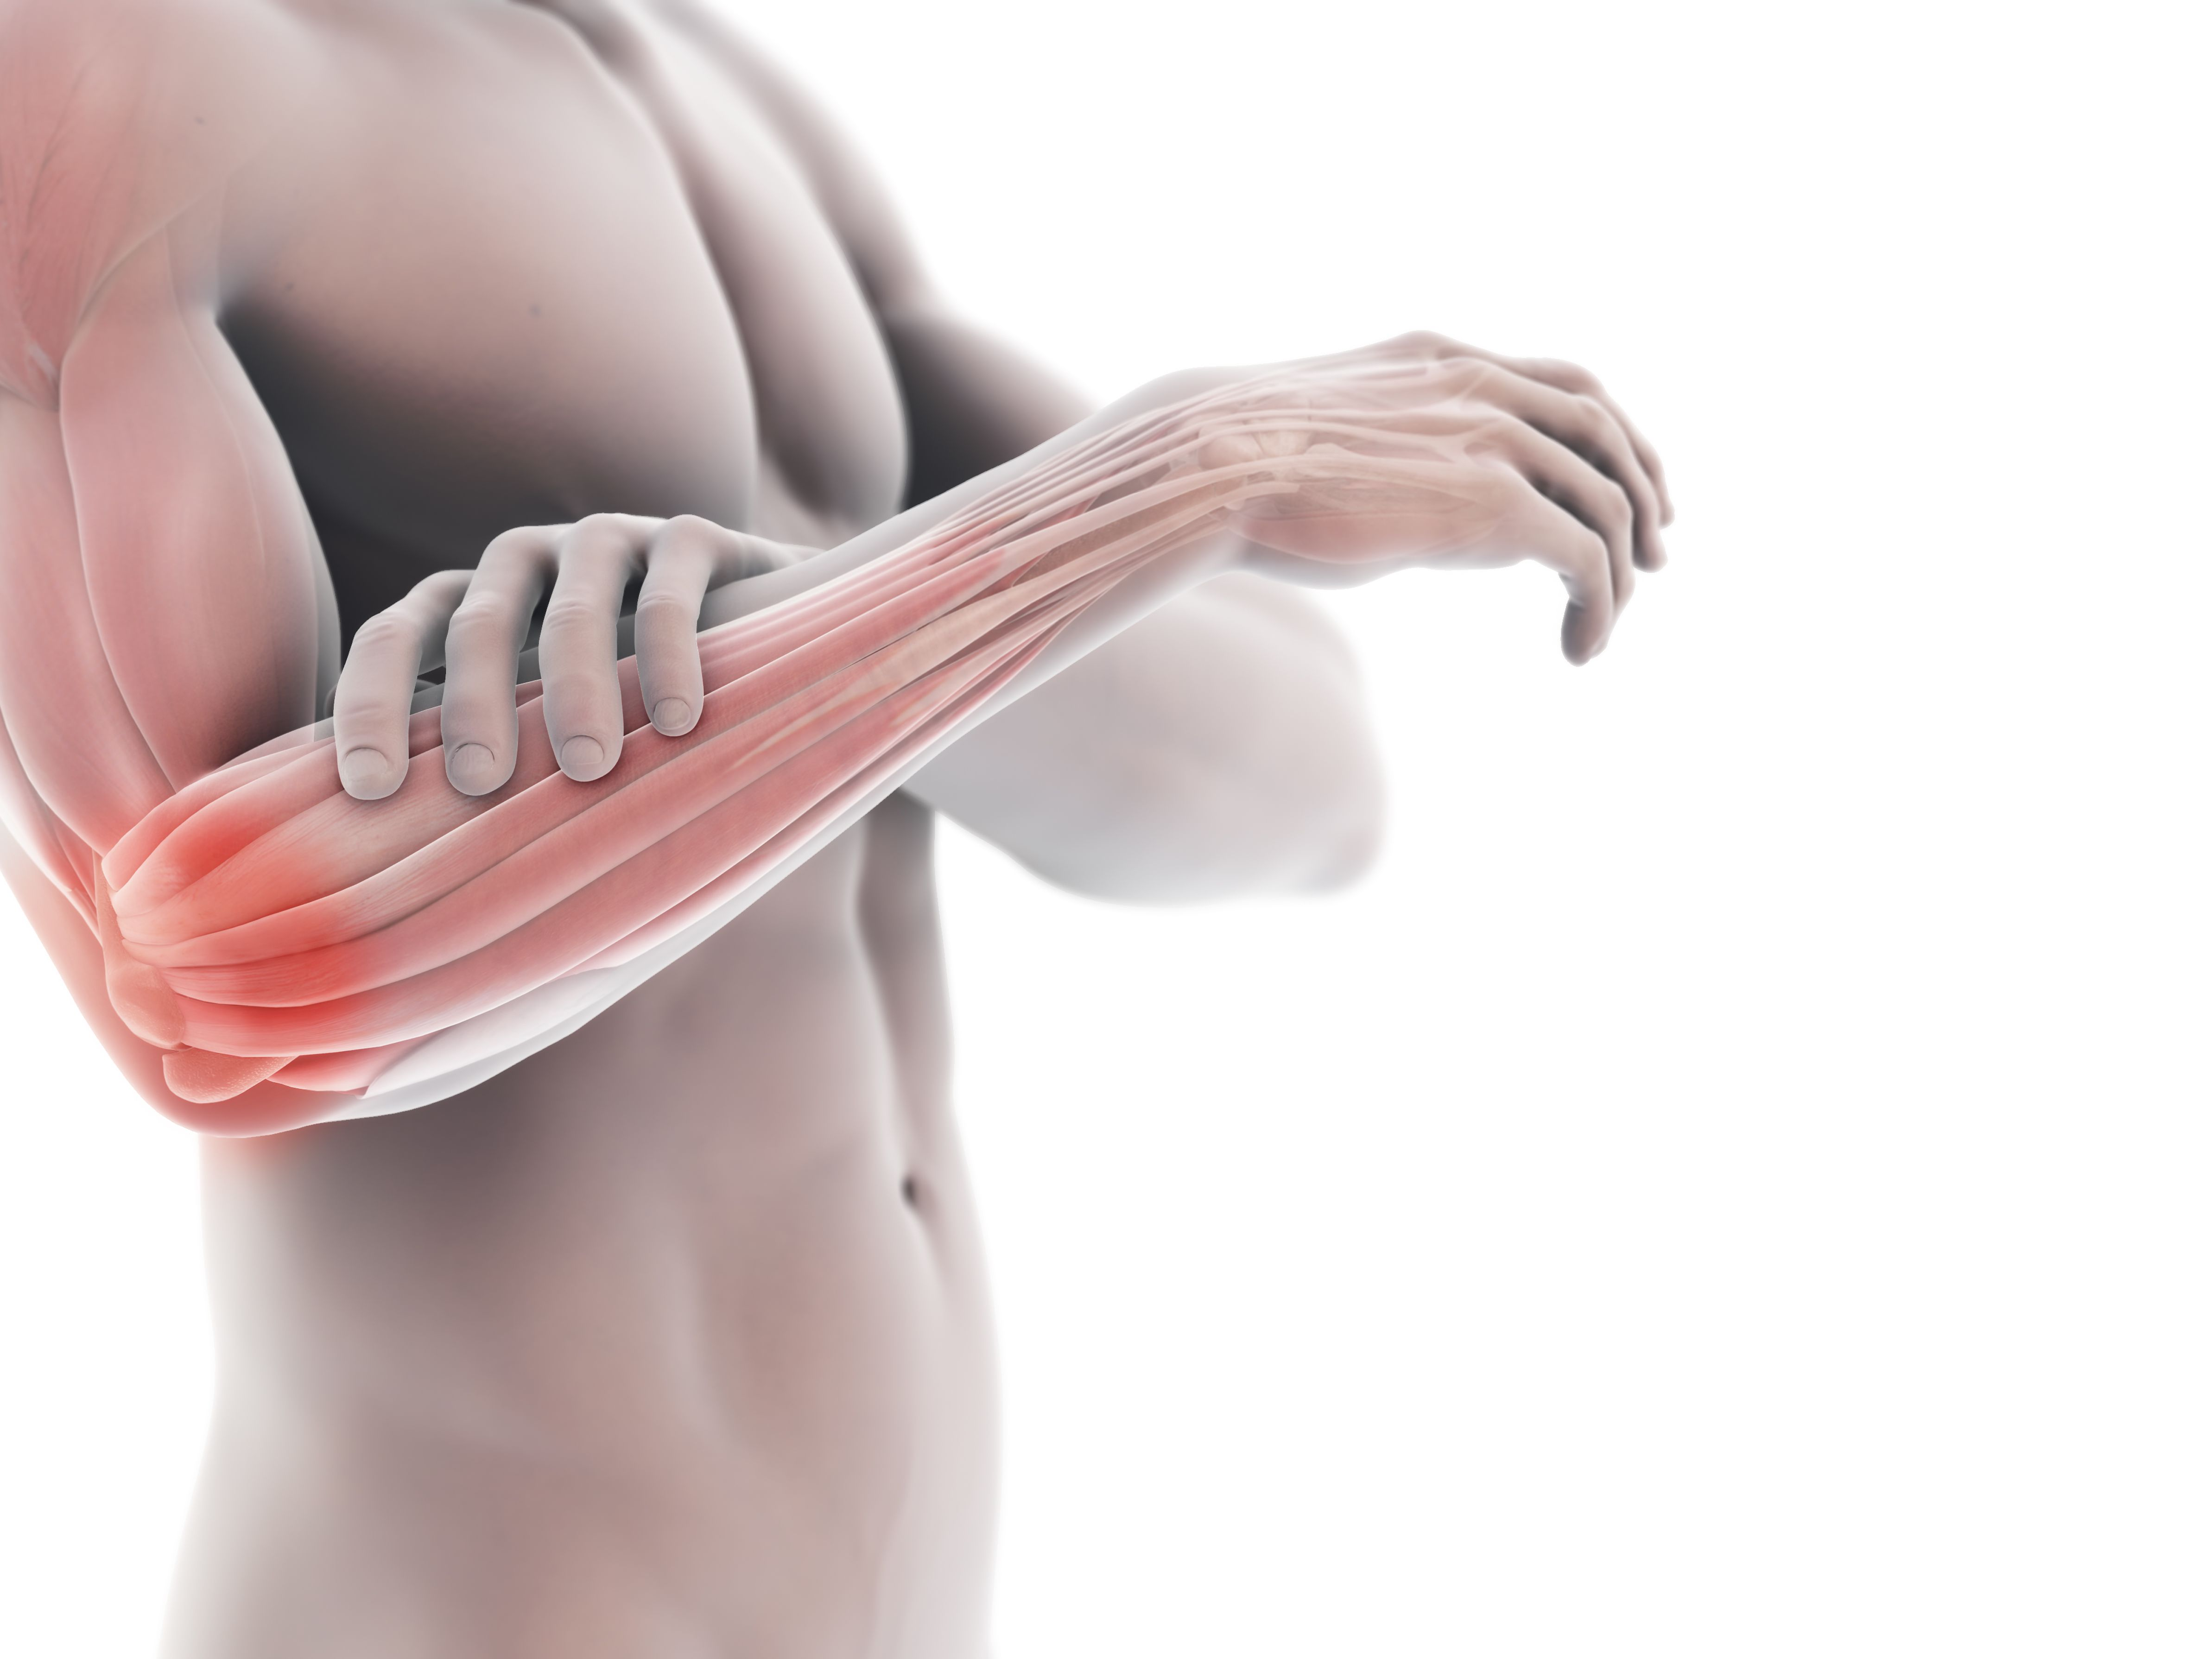 Symptoms, Diagnosis, and Treatments for Tennis Elbow